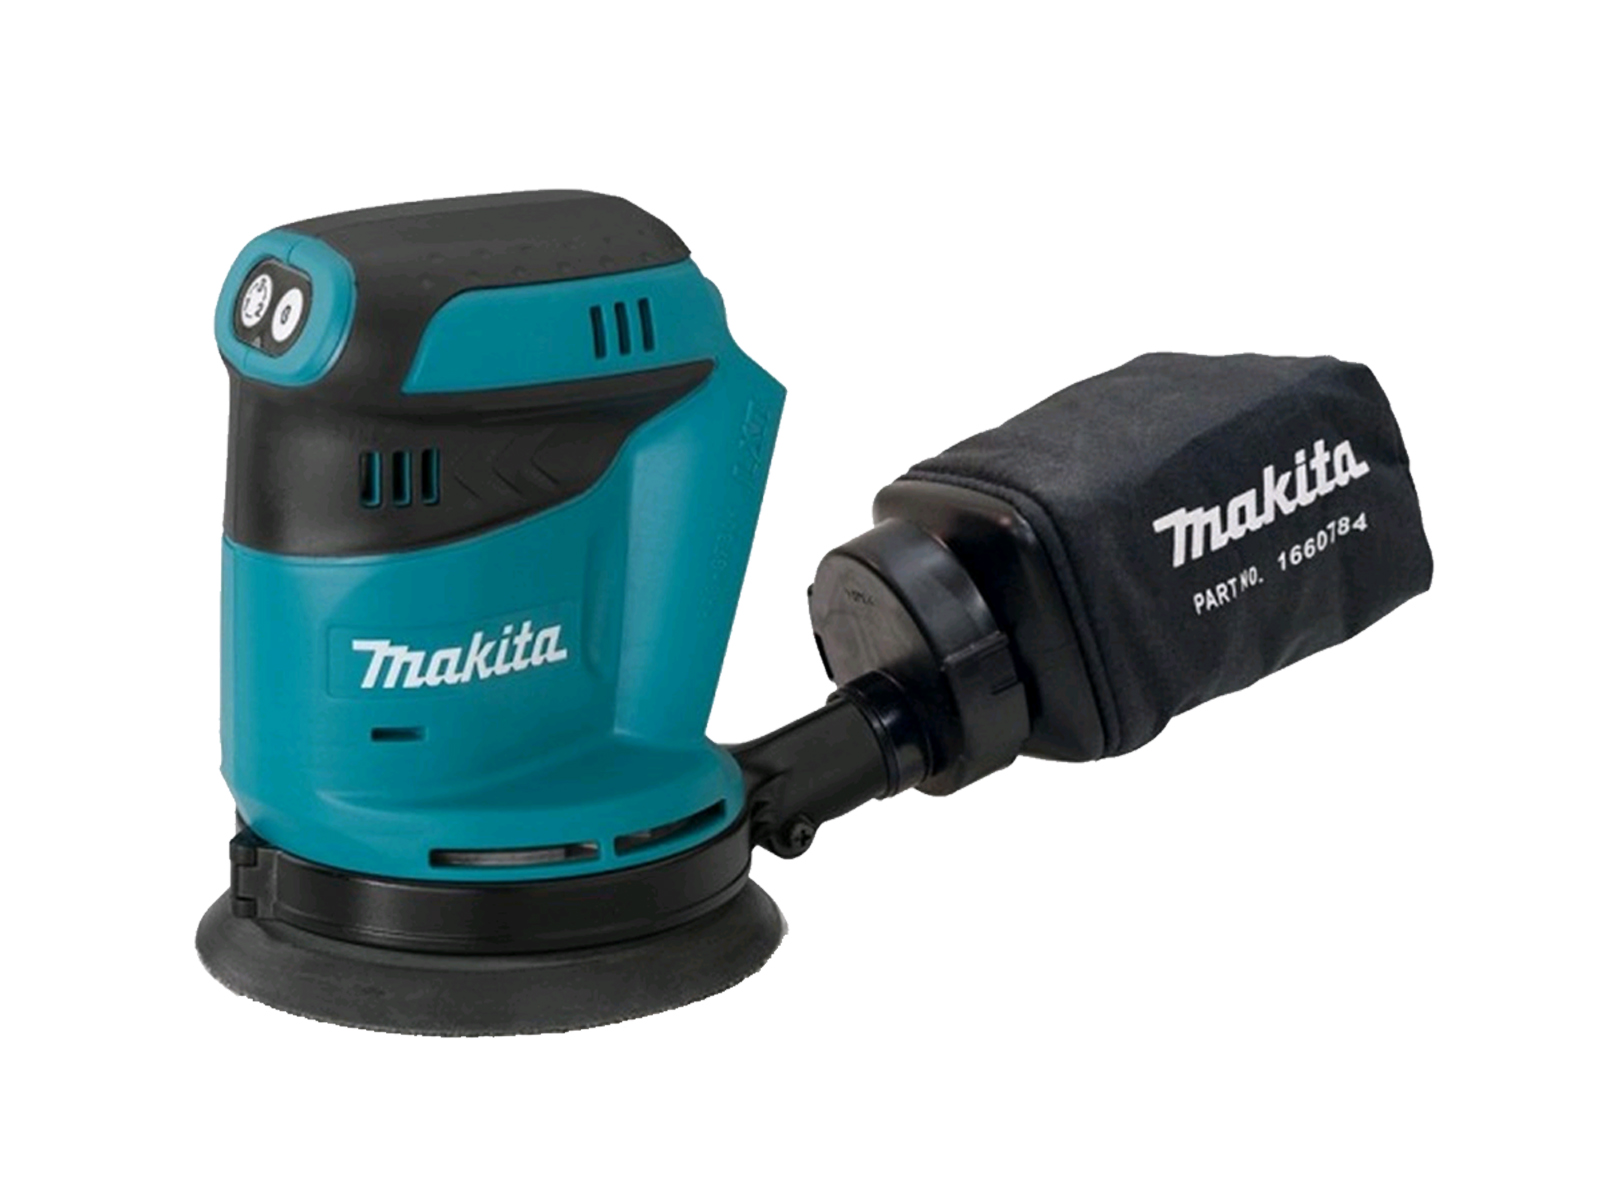 "MAKITA 18V RANDOM ORBIT SANDER 5"" - DBO180 - BODY ONLY"